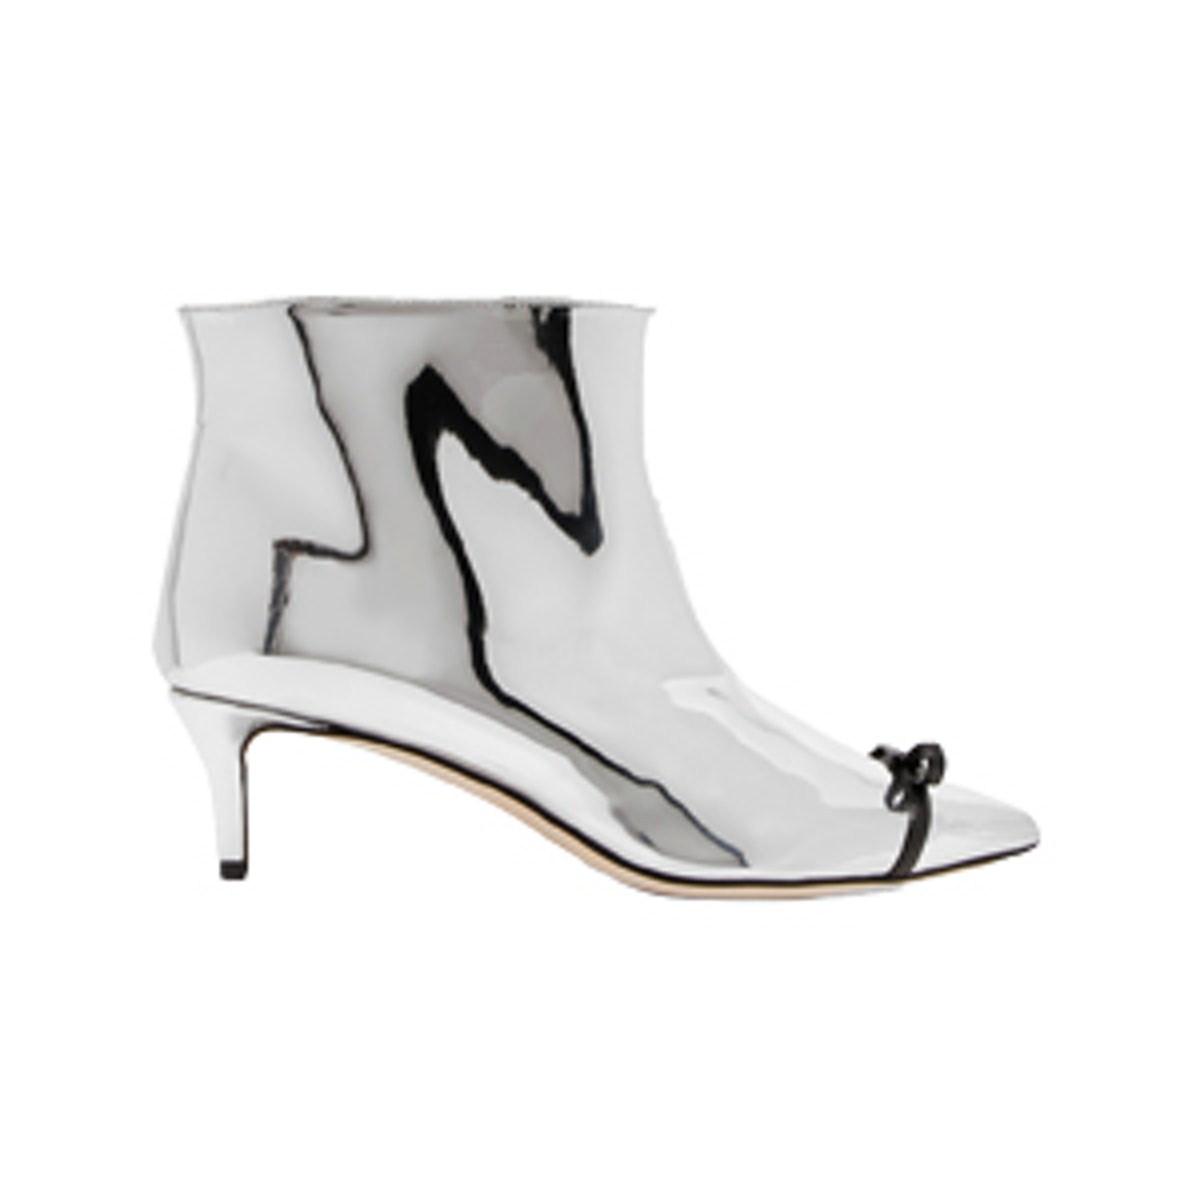 Bow-Embellished PVC-Trimmed Mirrored Faux Leather Ankle Boots